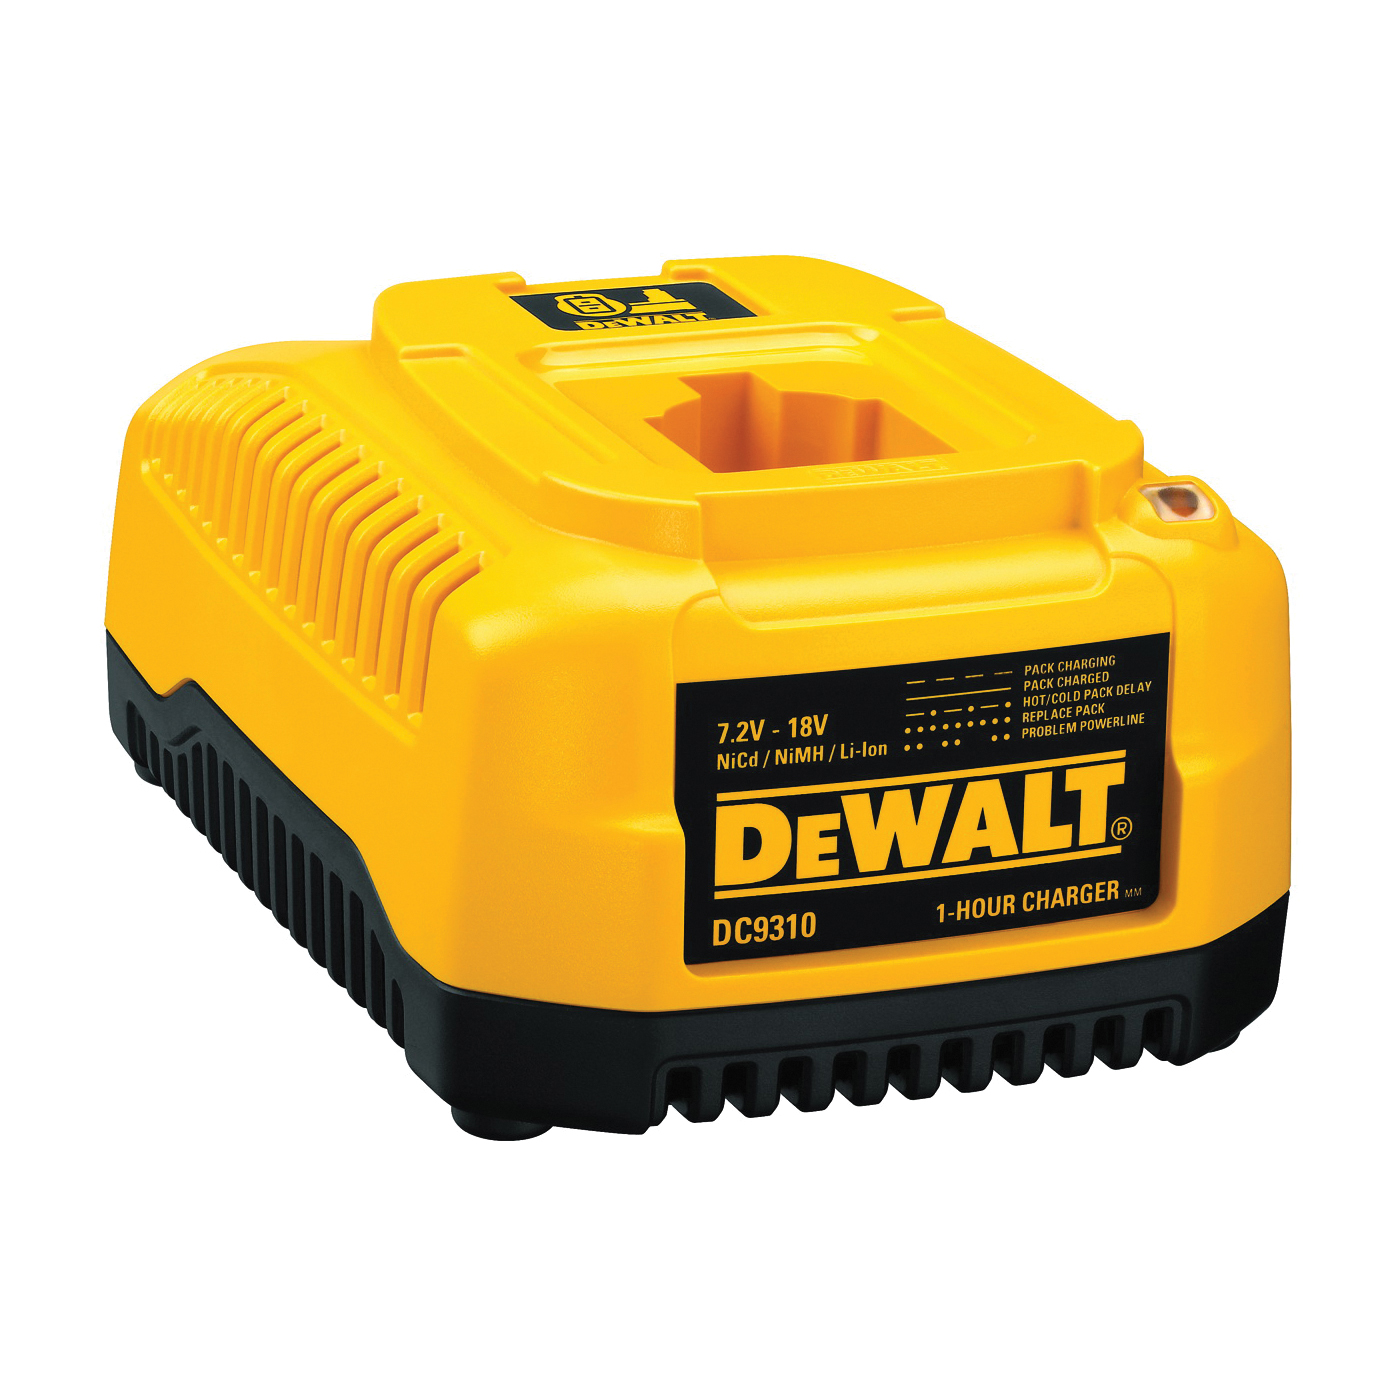 Picture of DeWALT DC9310 Fast Battery Charger, 120 V Output, 2 Ah, 1 hr Charge, 3 -Battery, Battery Included: No